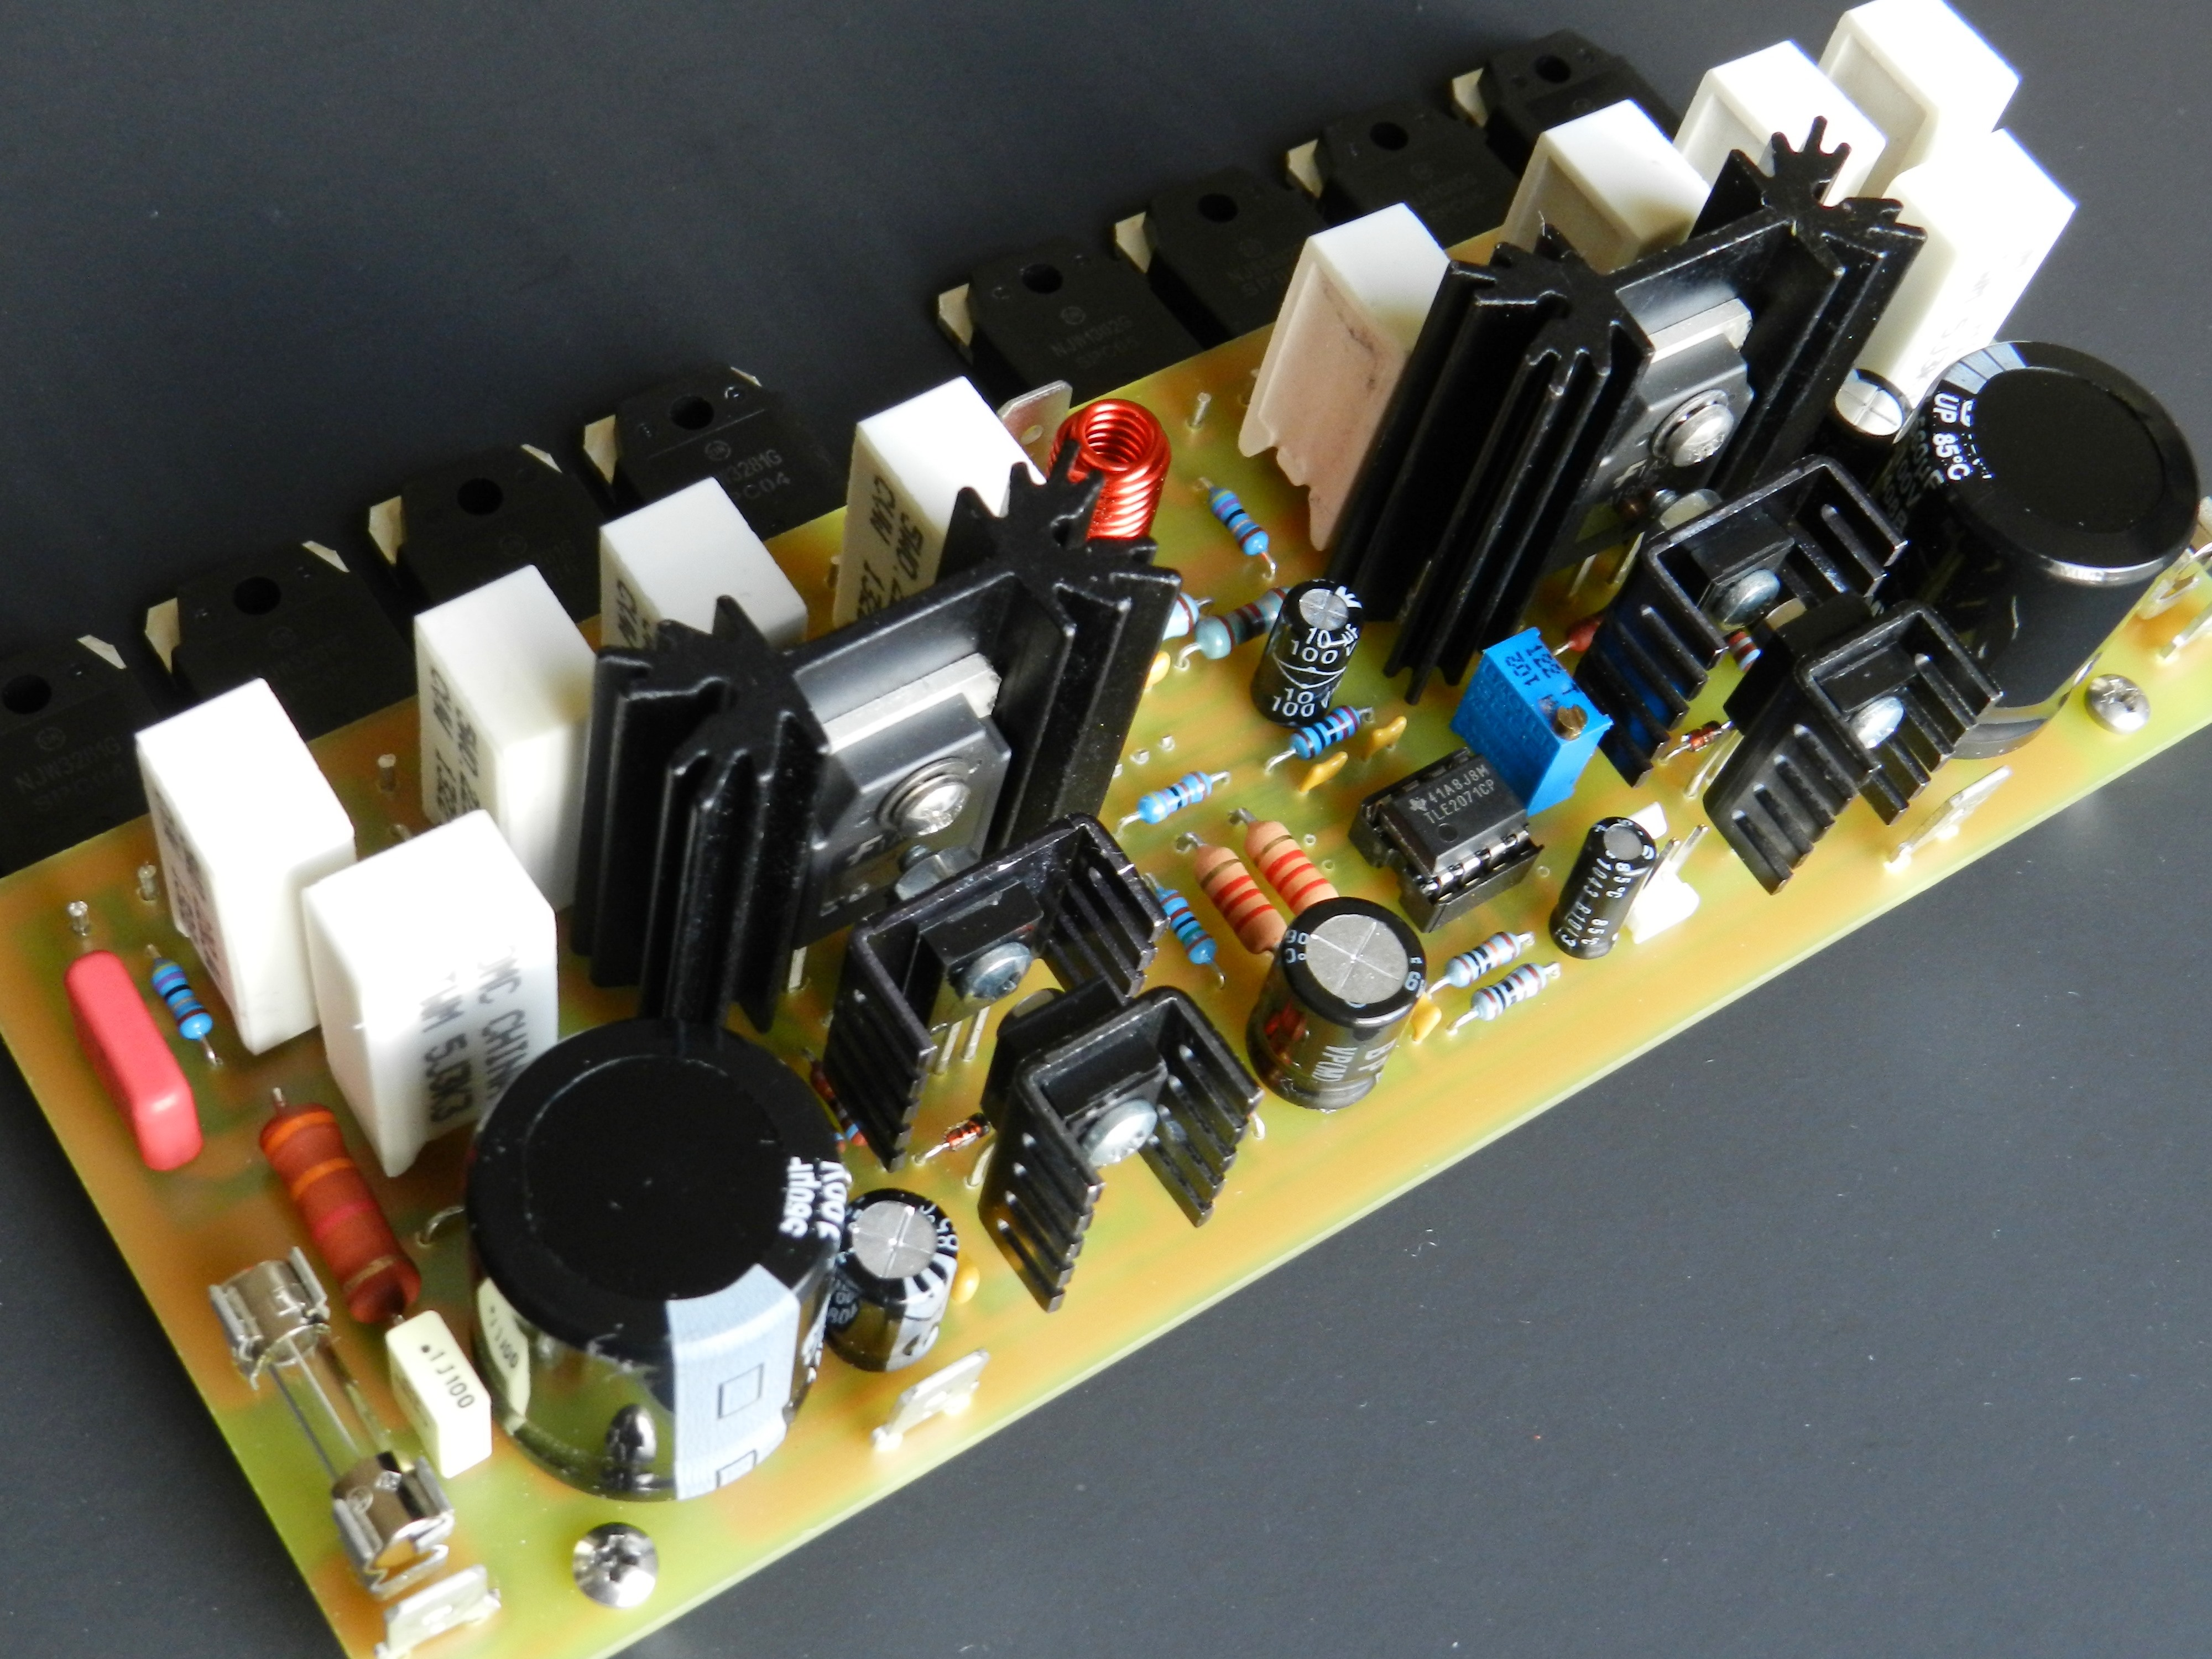 Project 63 Buildaudioamps The Operational Amplifier Used As An A Simple Explanation Is Second In Series Of Audio Power Amplifiers Which Low Noise High Speed Jfet Input At Front End